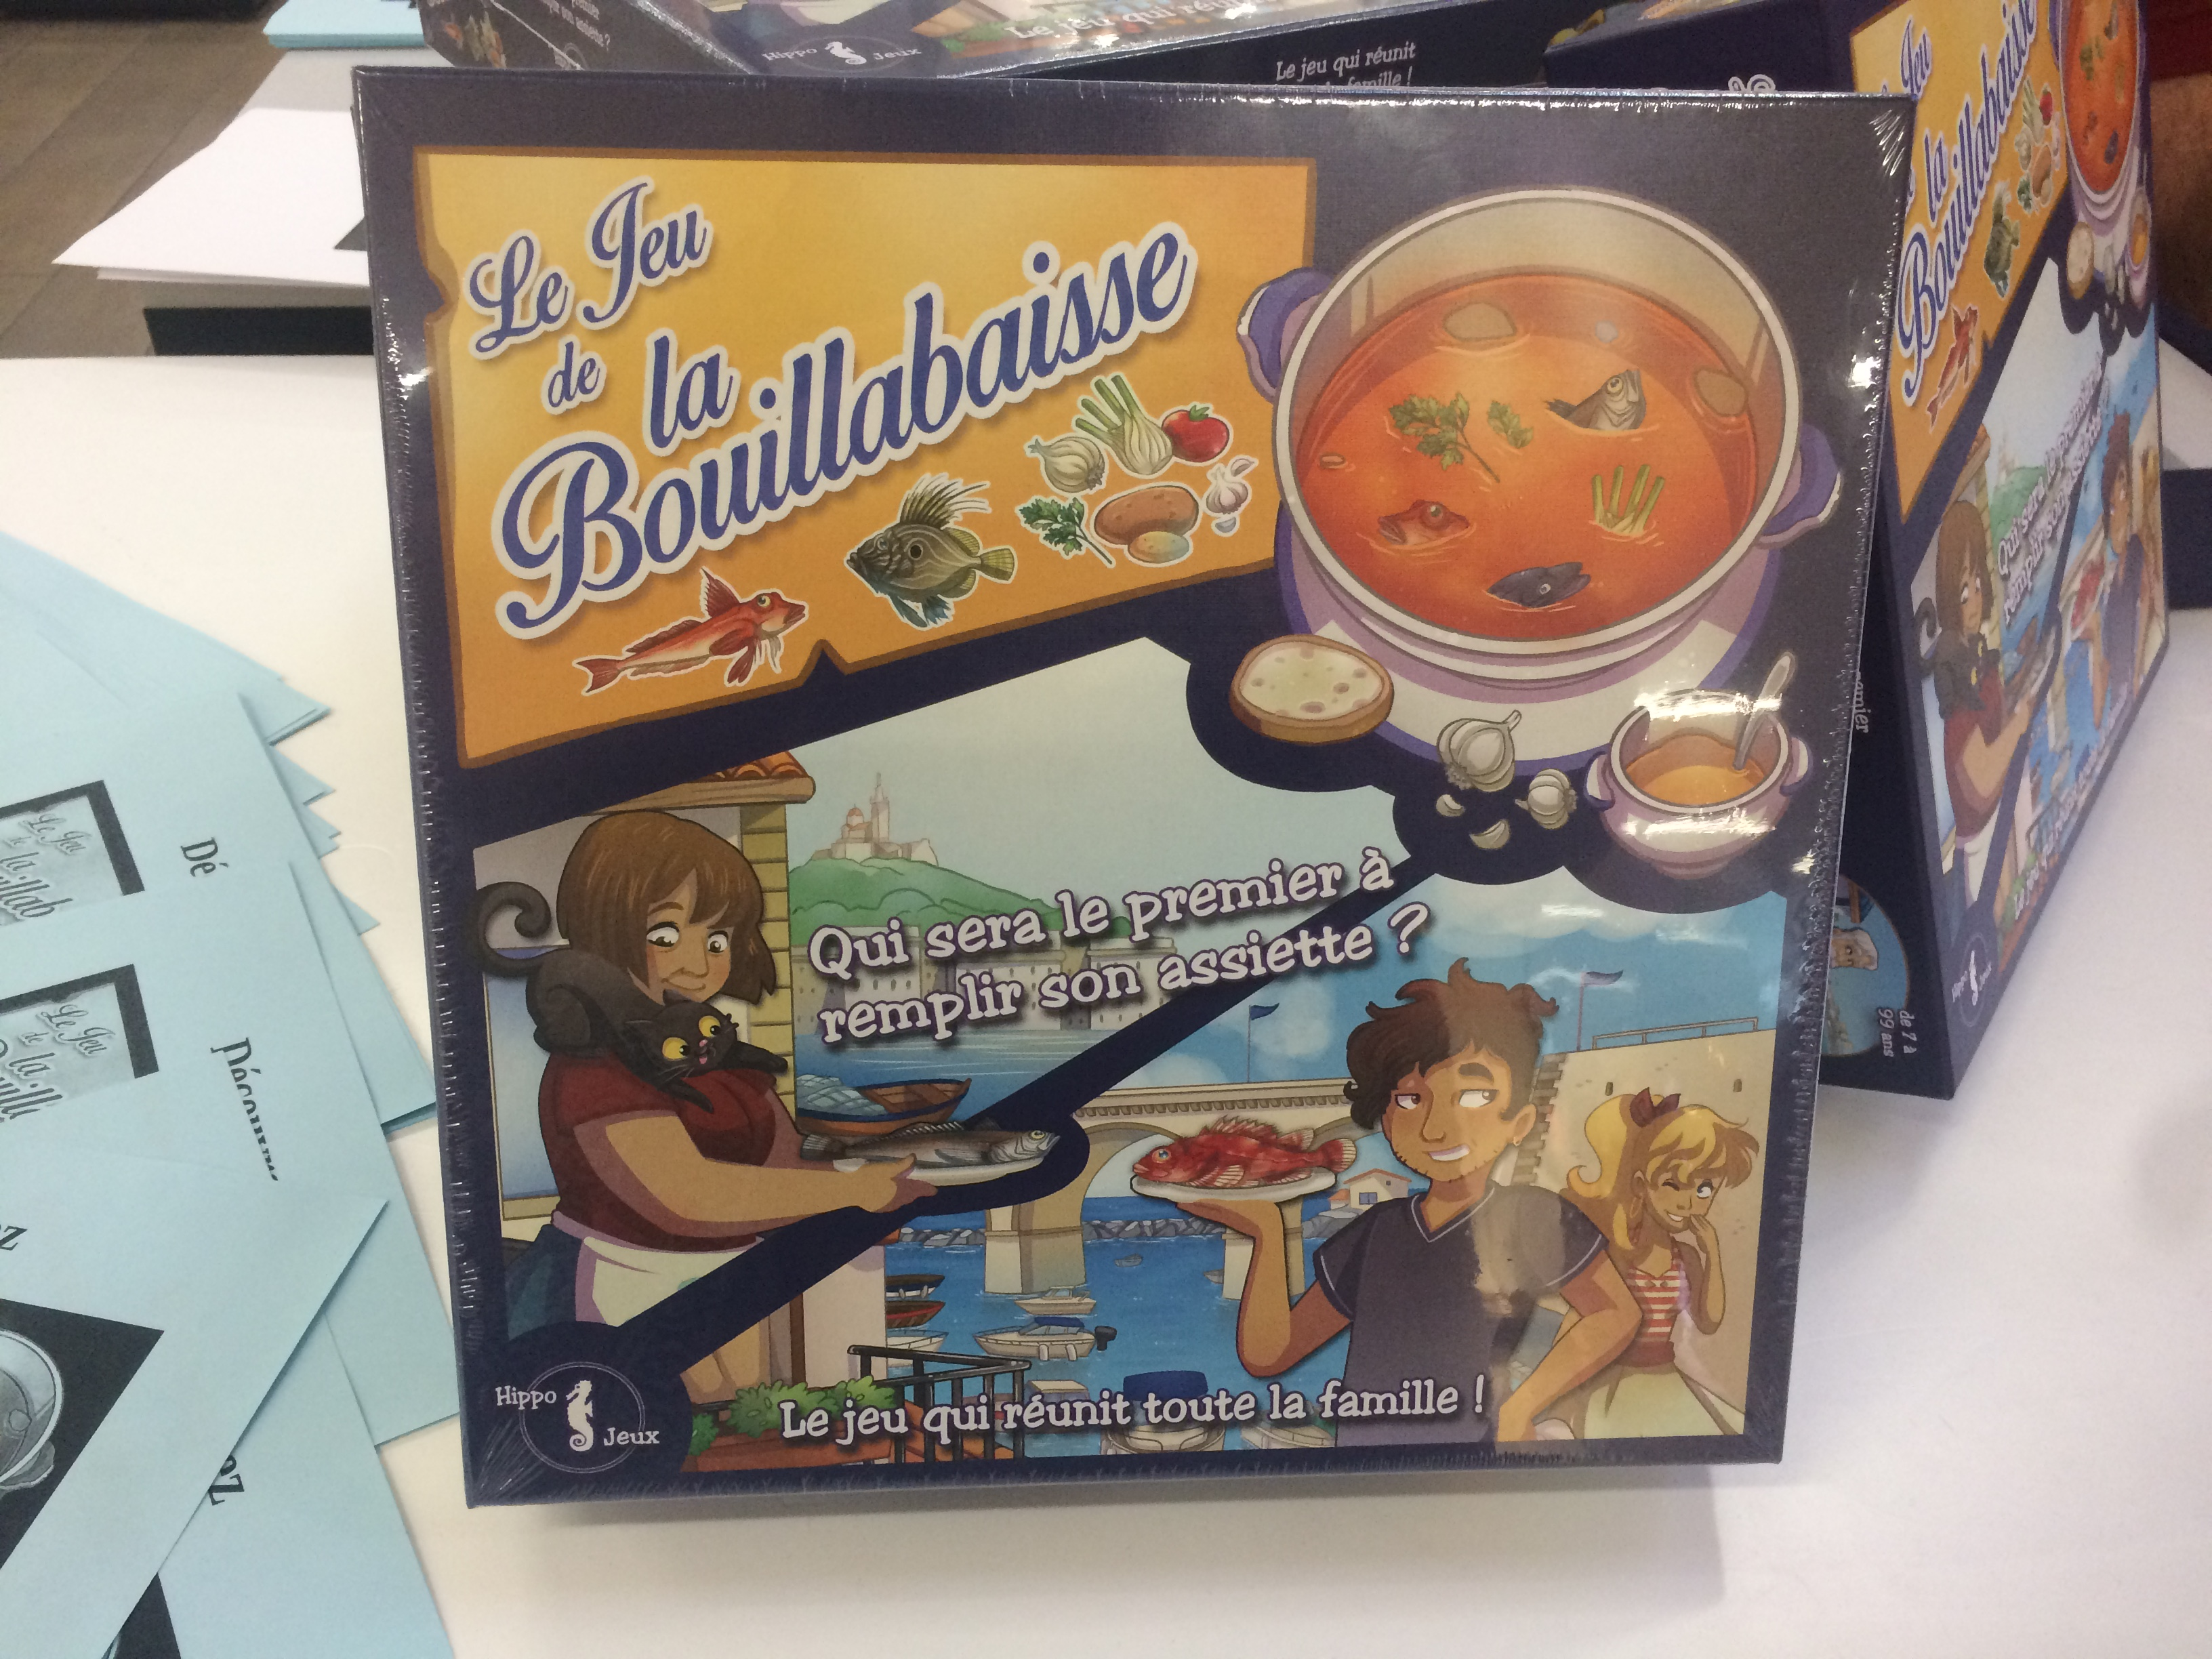 La Bouillabaisse un jeu made in Marseille. ©MD